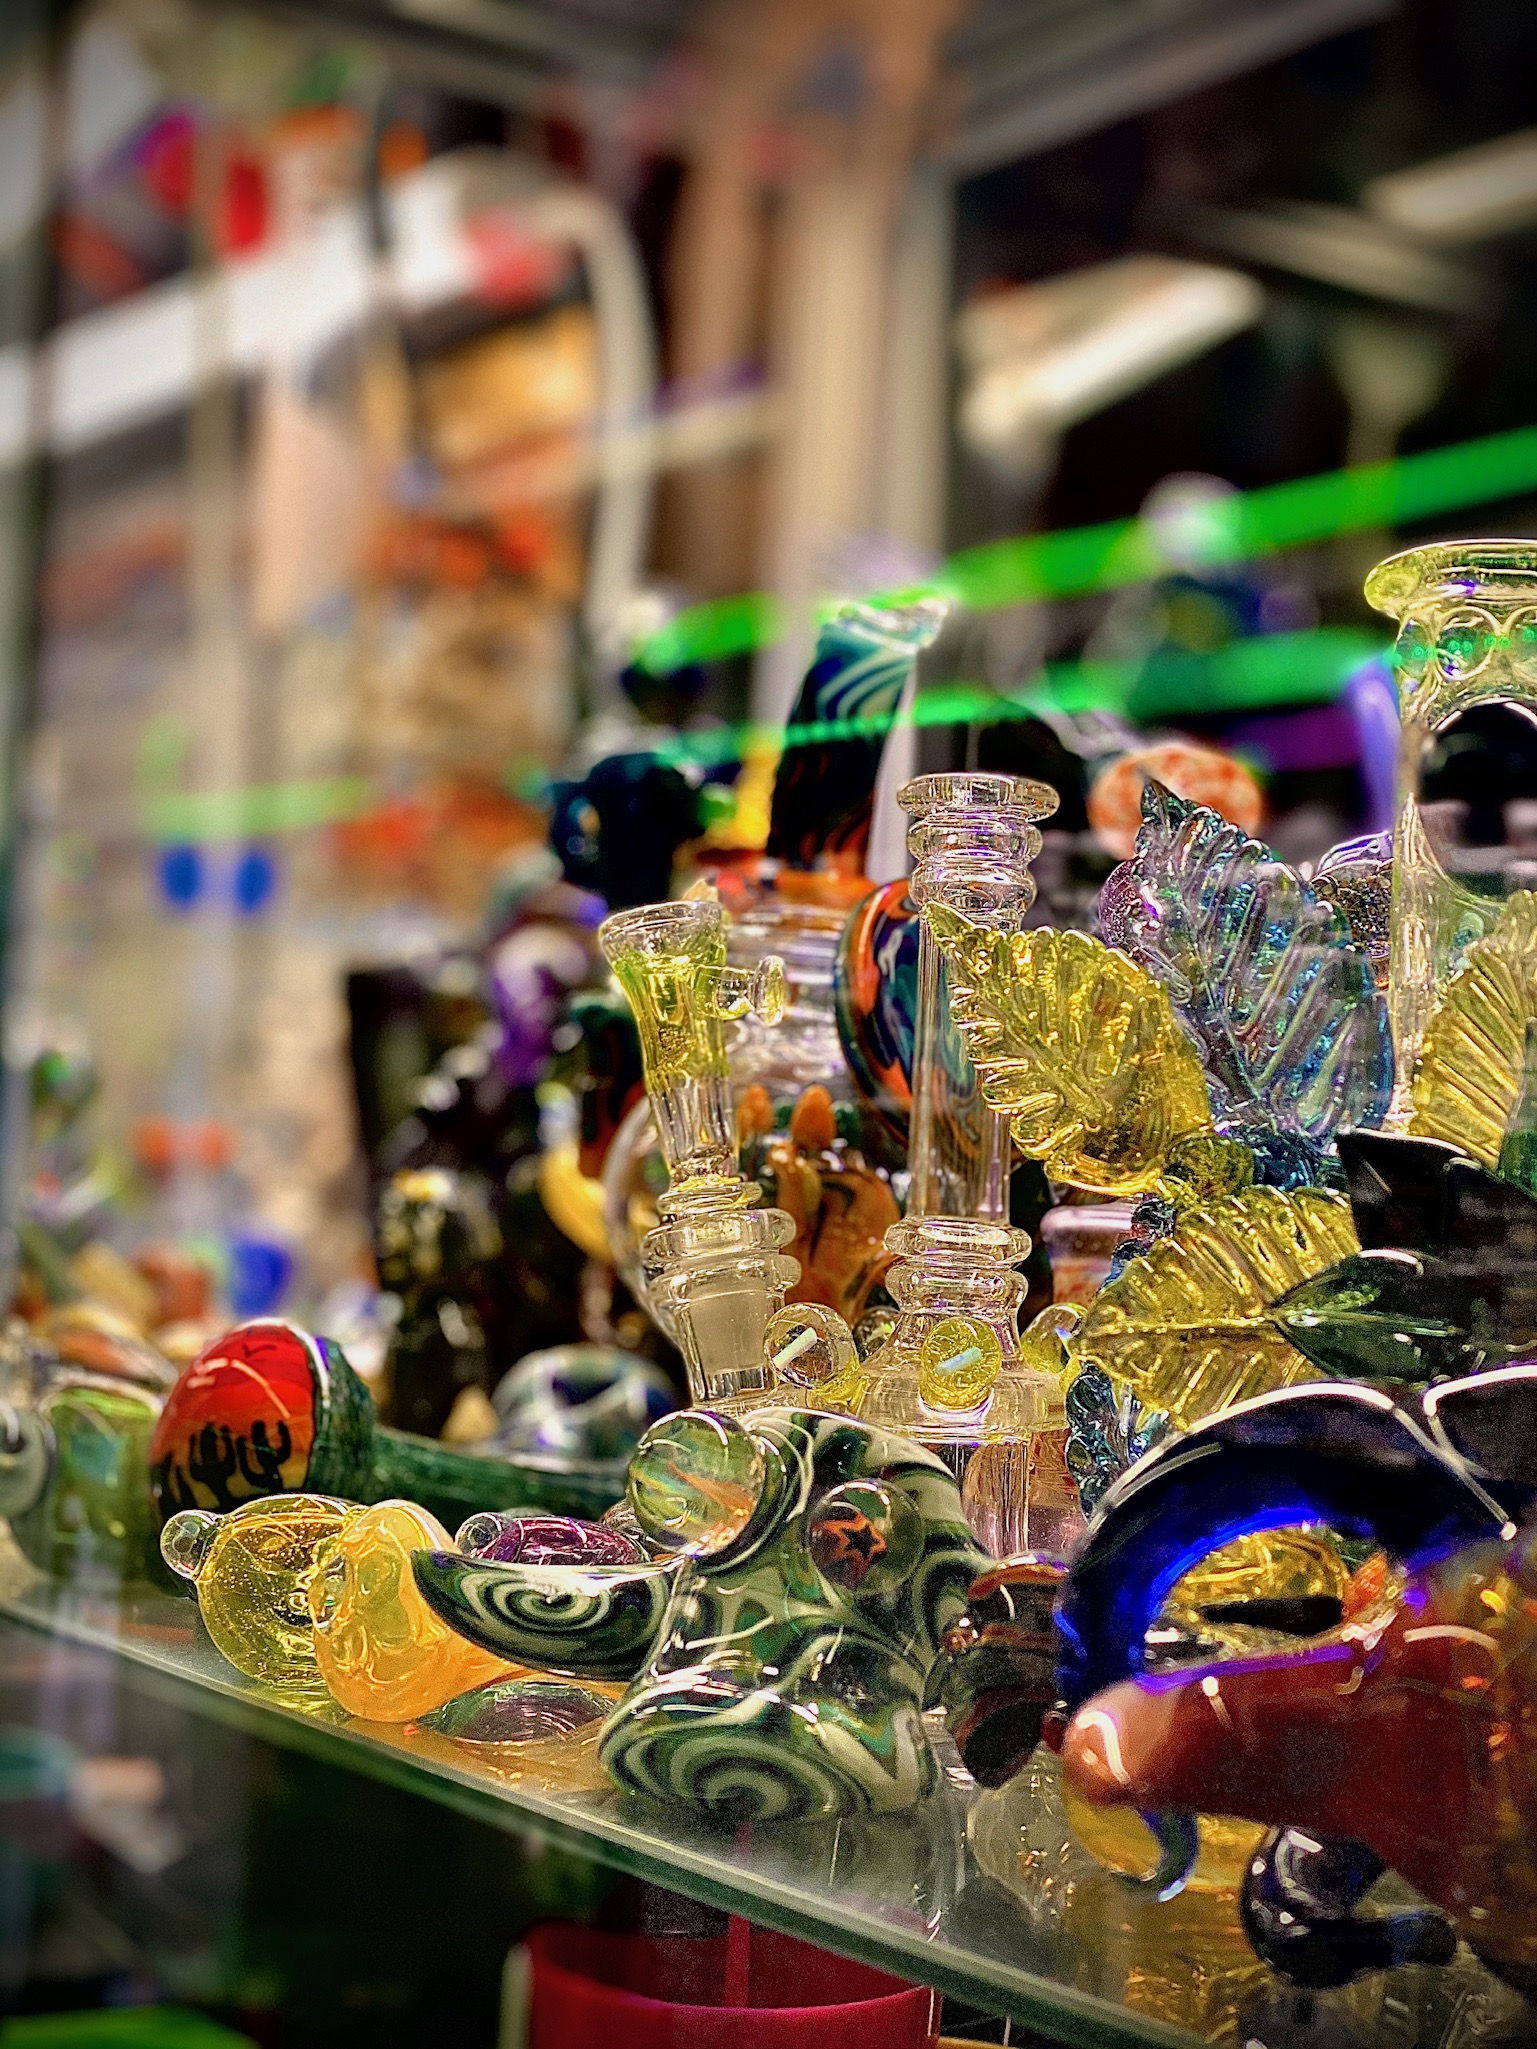 Glass pipe and bongs